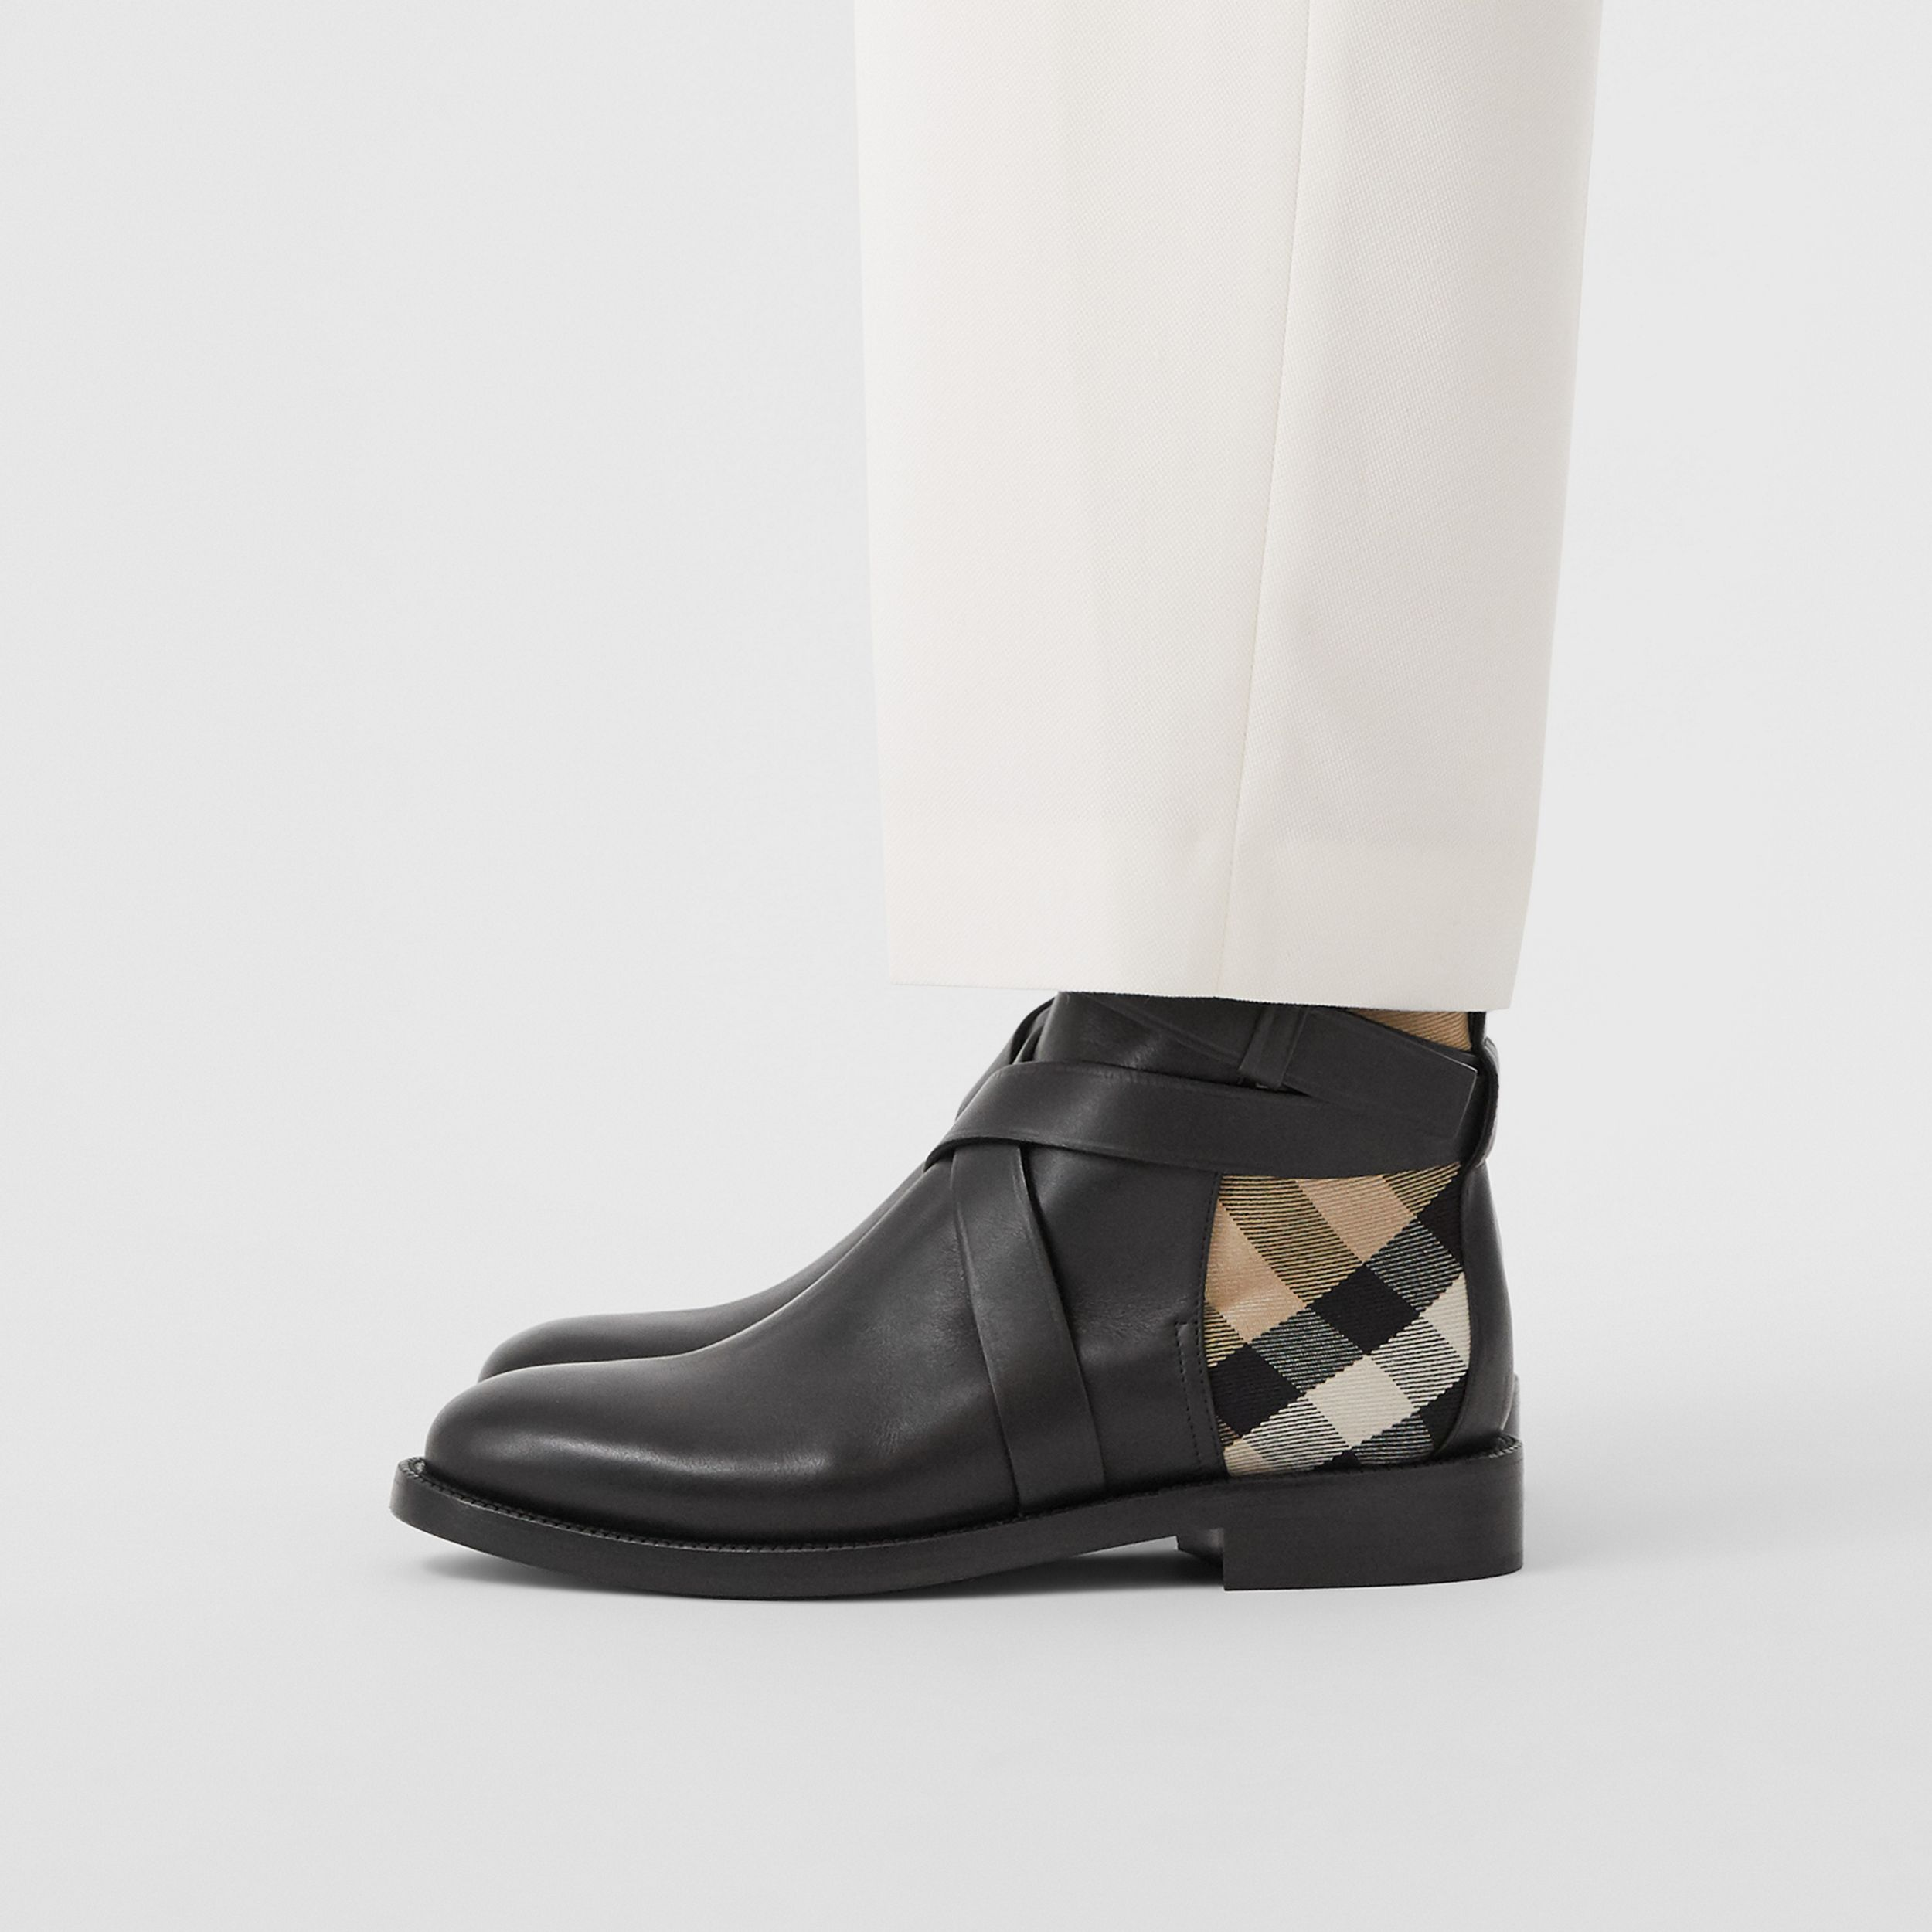 House Check and Leather Ankle Boots in Black/archive Beige - Women | Burberry Canada - 3